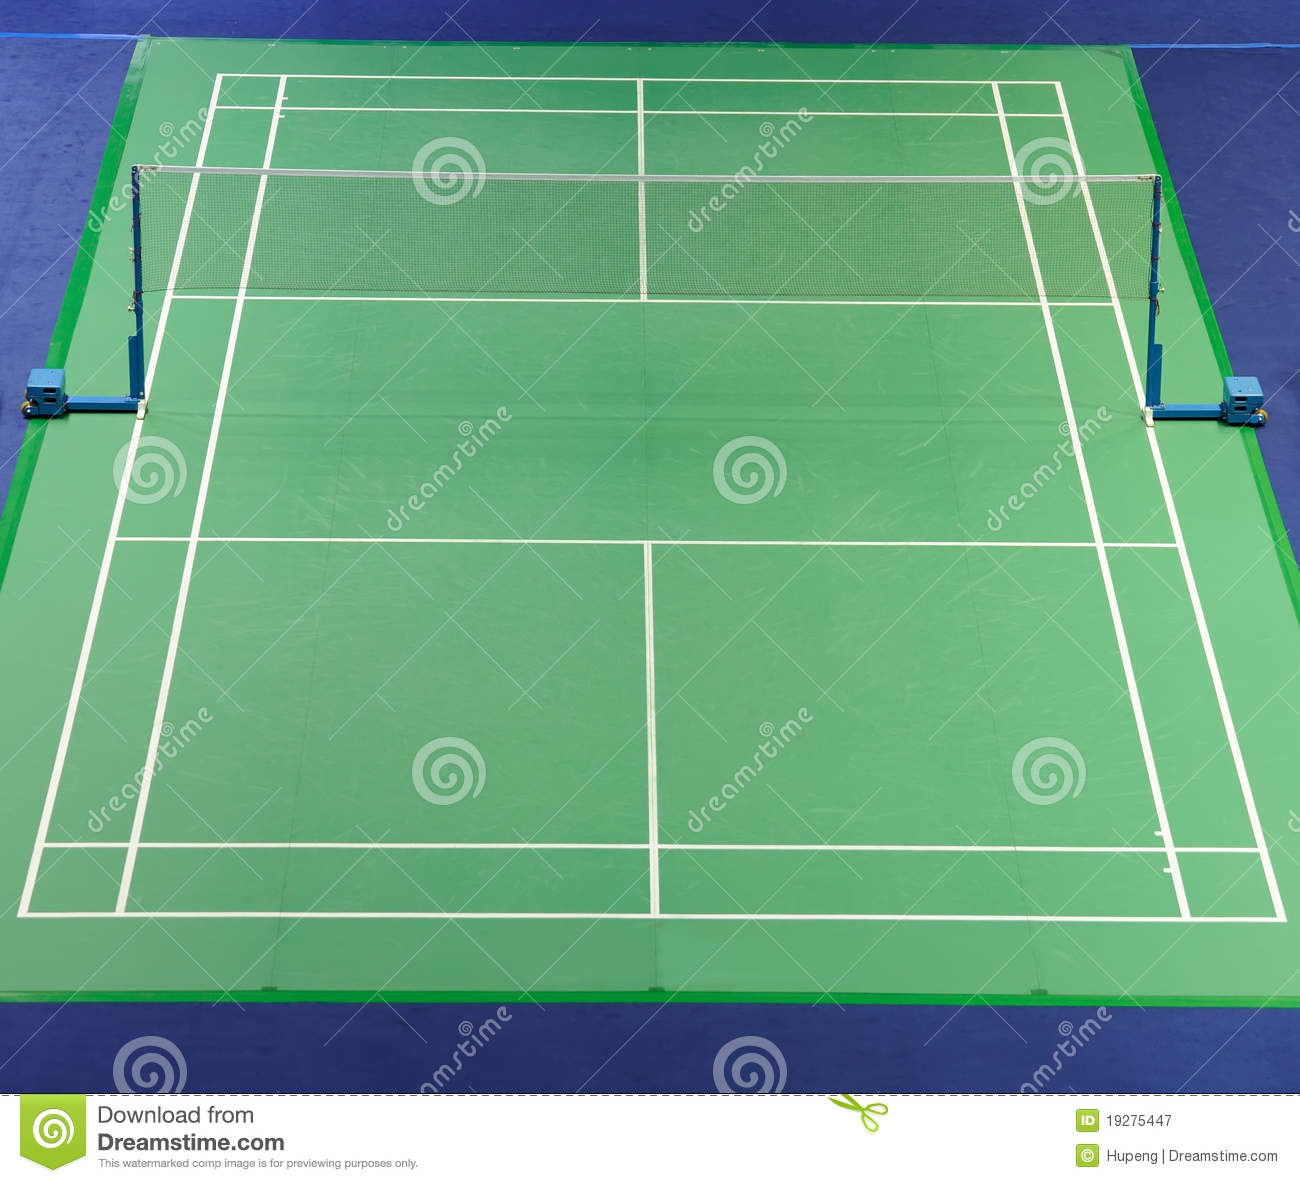 how to build a badminton court